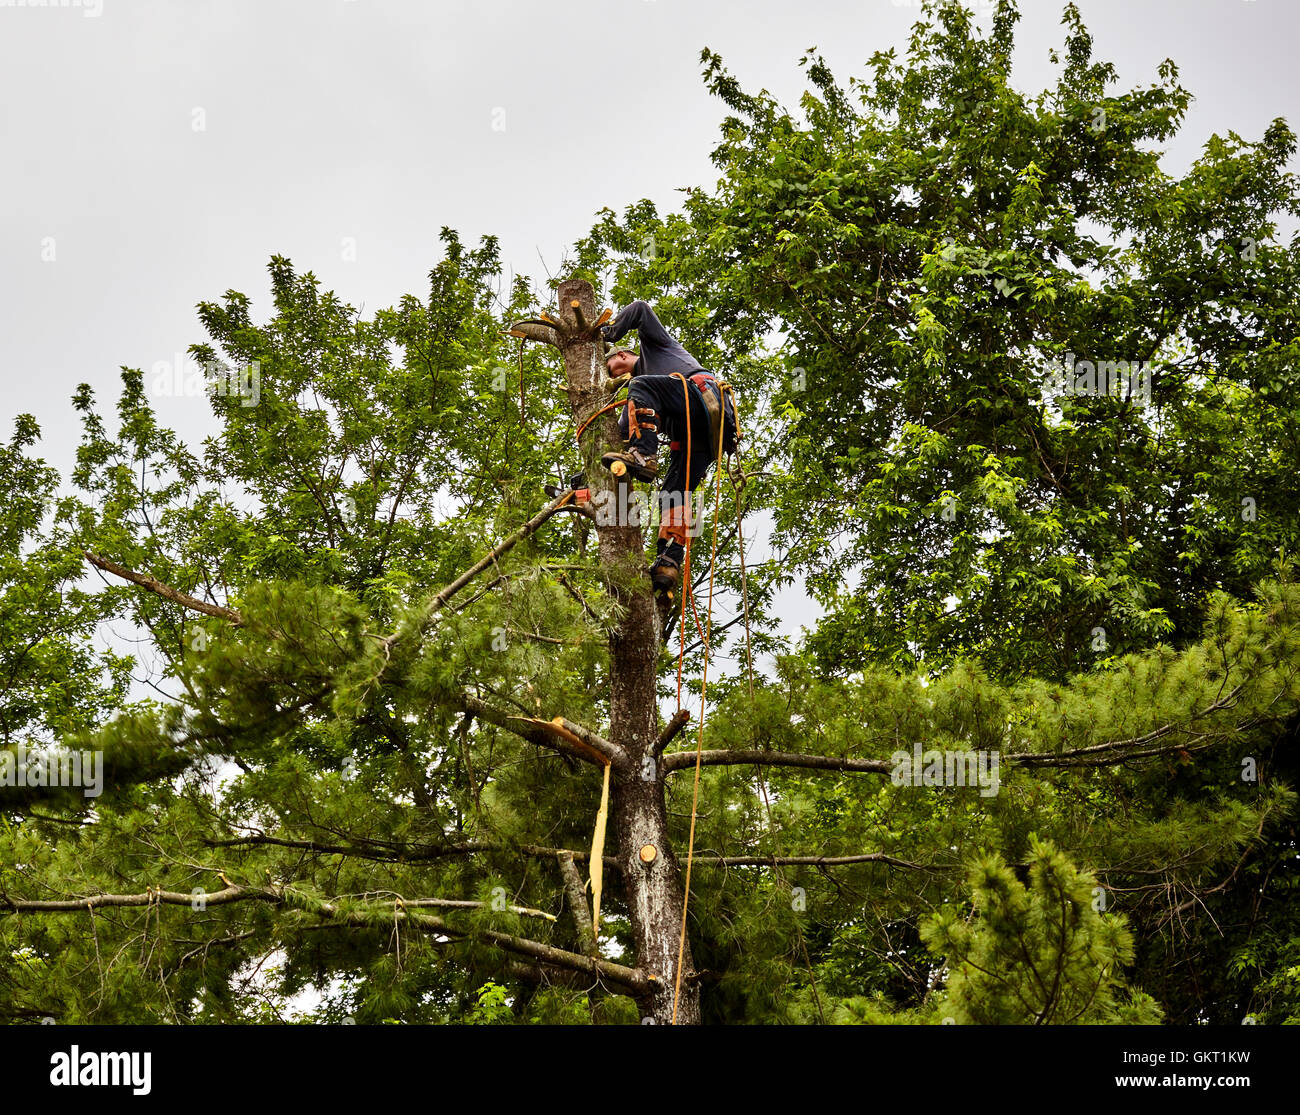 Professional Tree trimmer cutting branches off of a tall pine tree with a chain saw - Stock Image